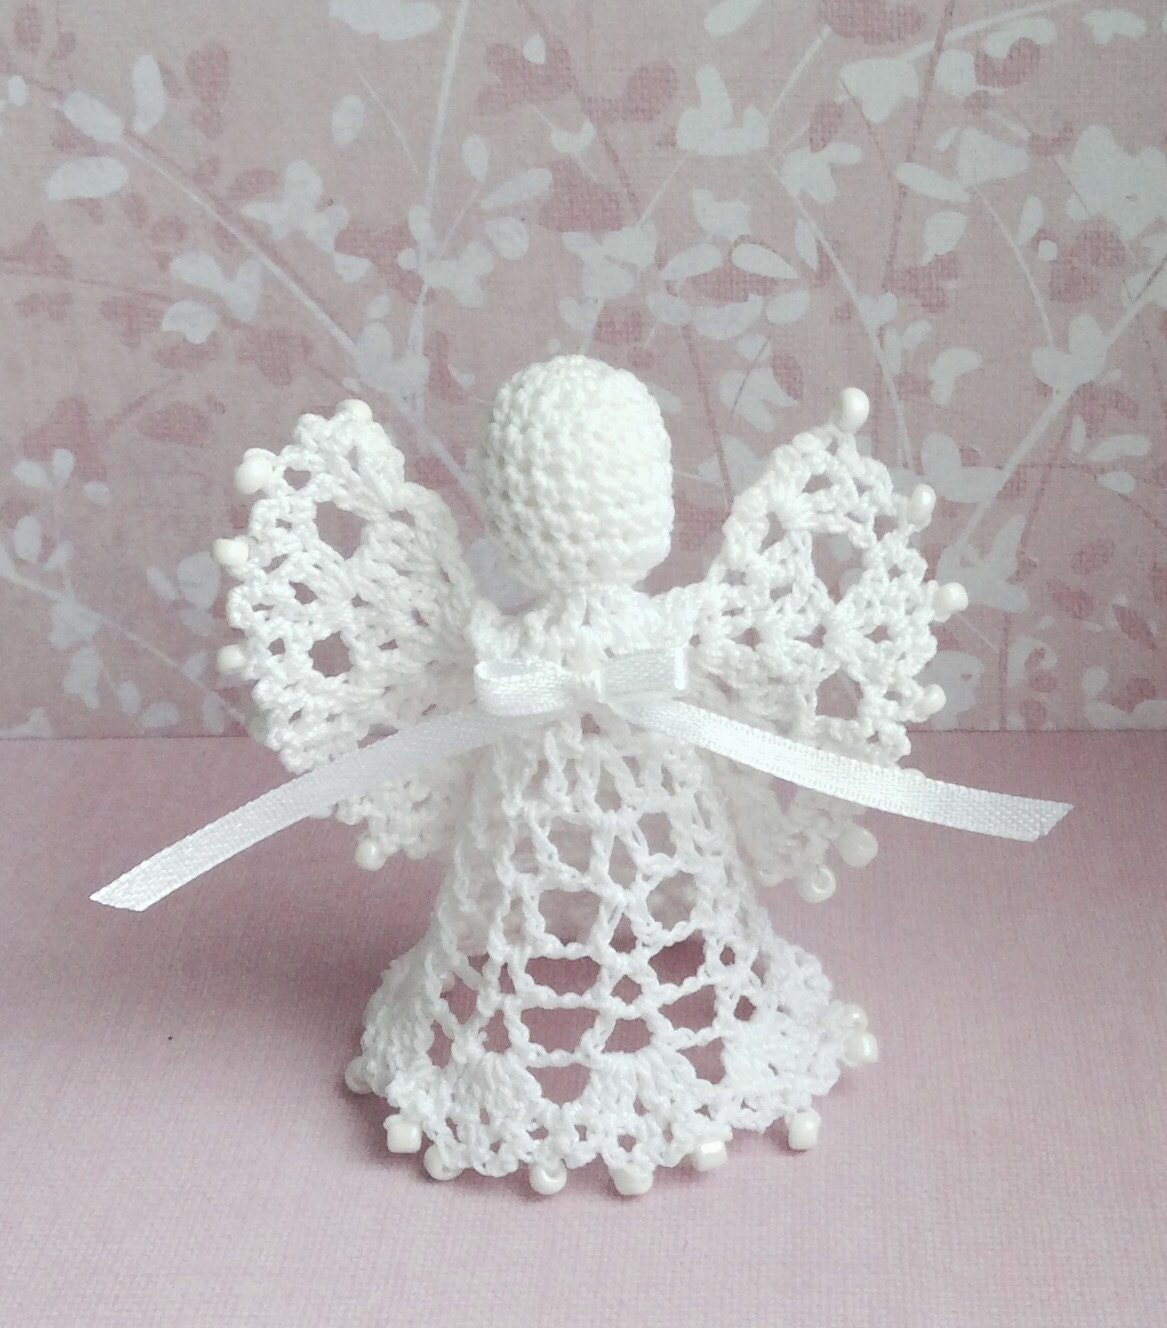 Crochet Angel Baptism Gift Christmas Lace Angel Ornament Tree: Sale Lace Angel Christmas Angel Chrochet Ornament Beaded Angel